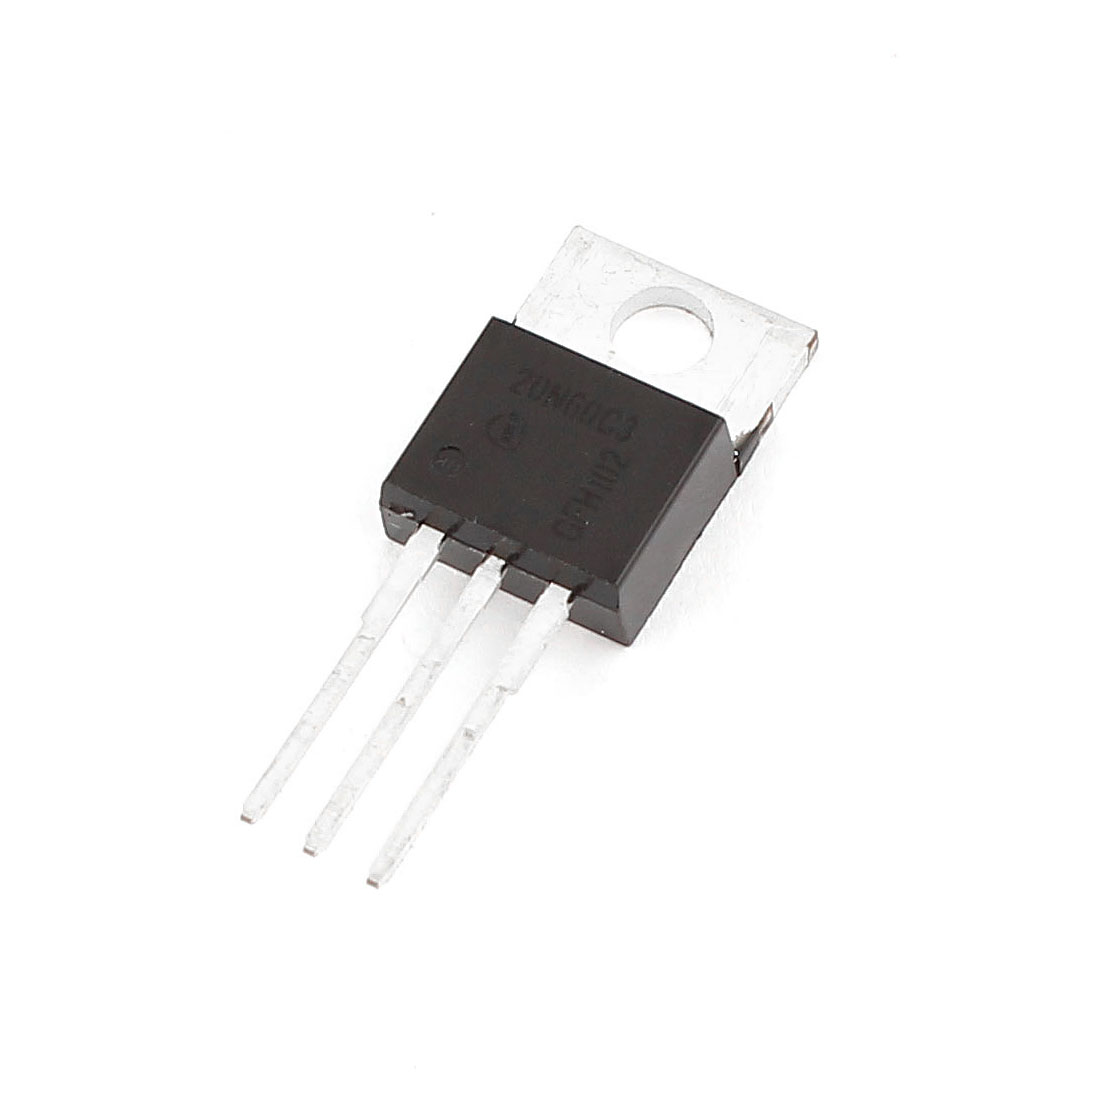 SPP20N60C3 TO-220 MOS Effect Power Transistor 650V 0.19Ohm 20.7A